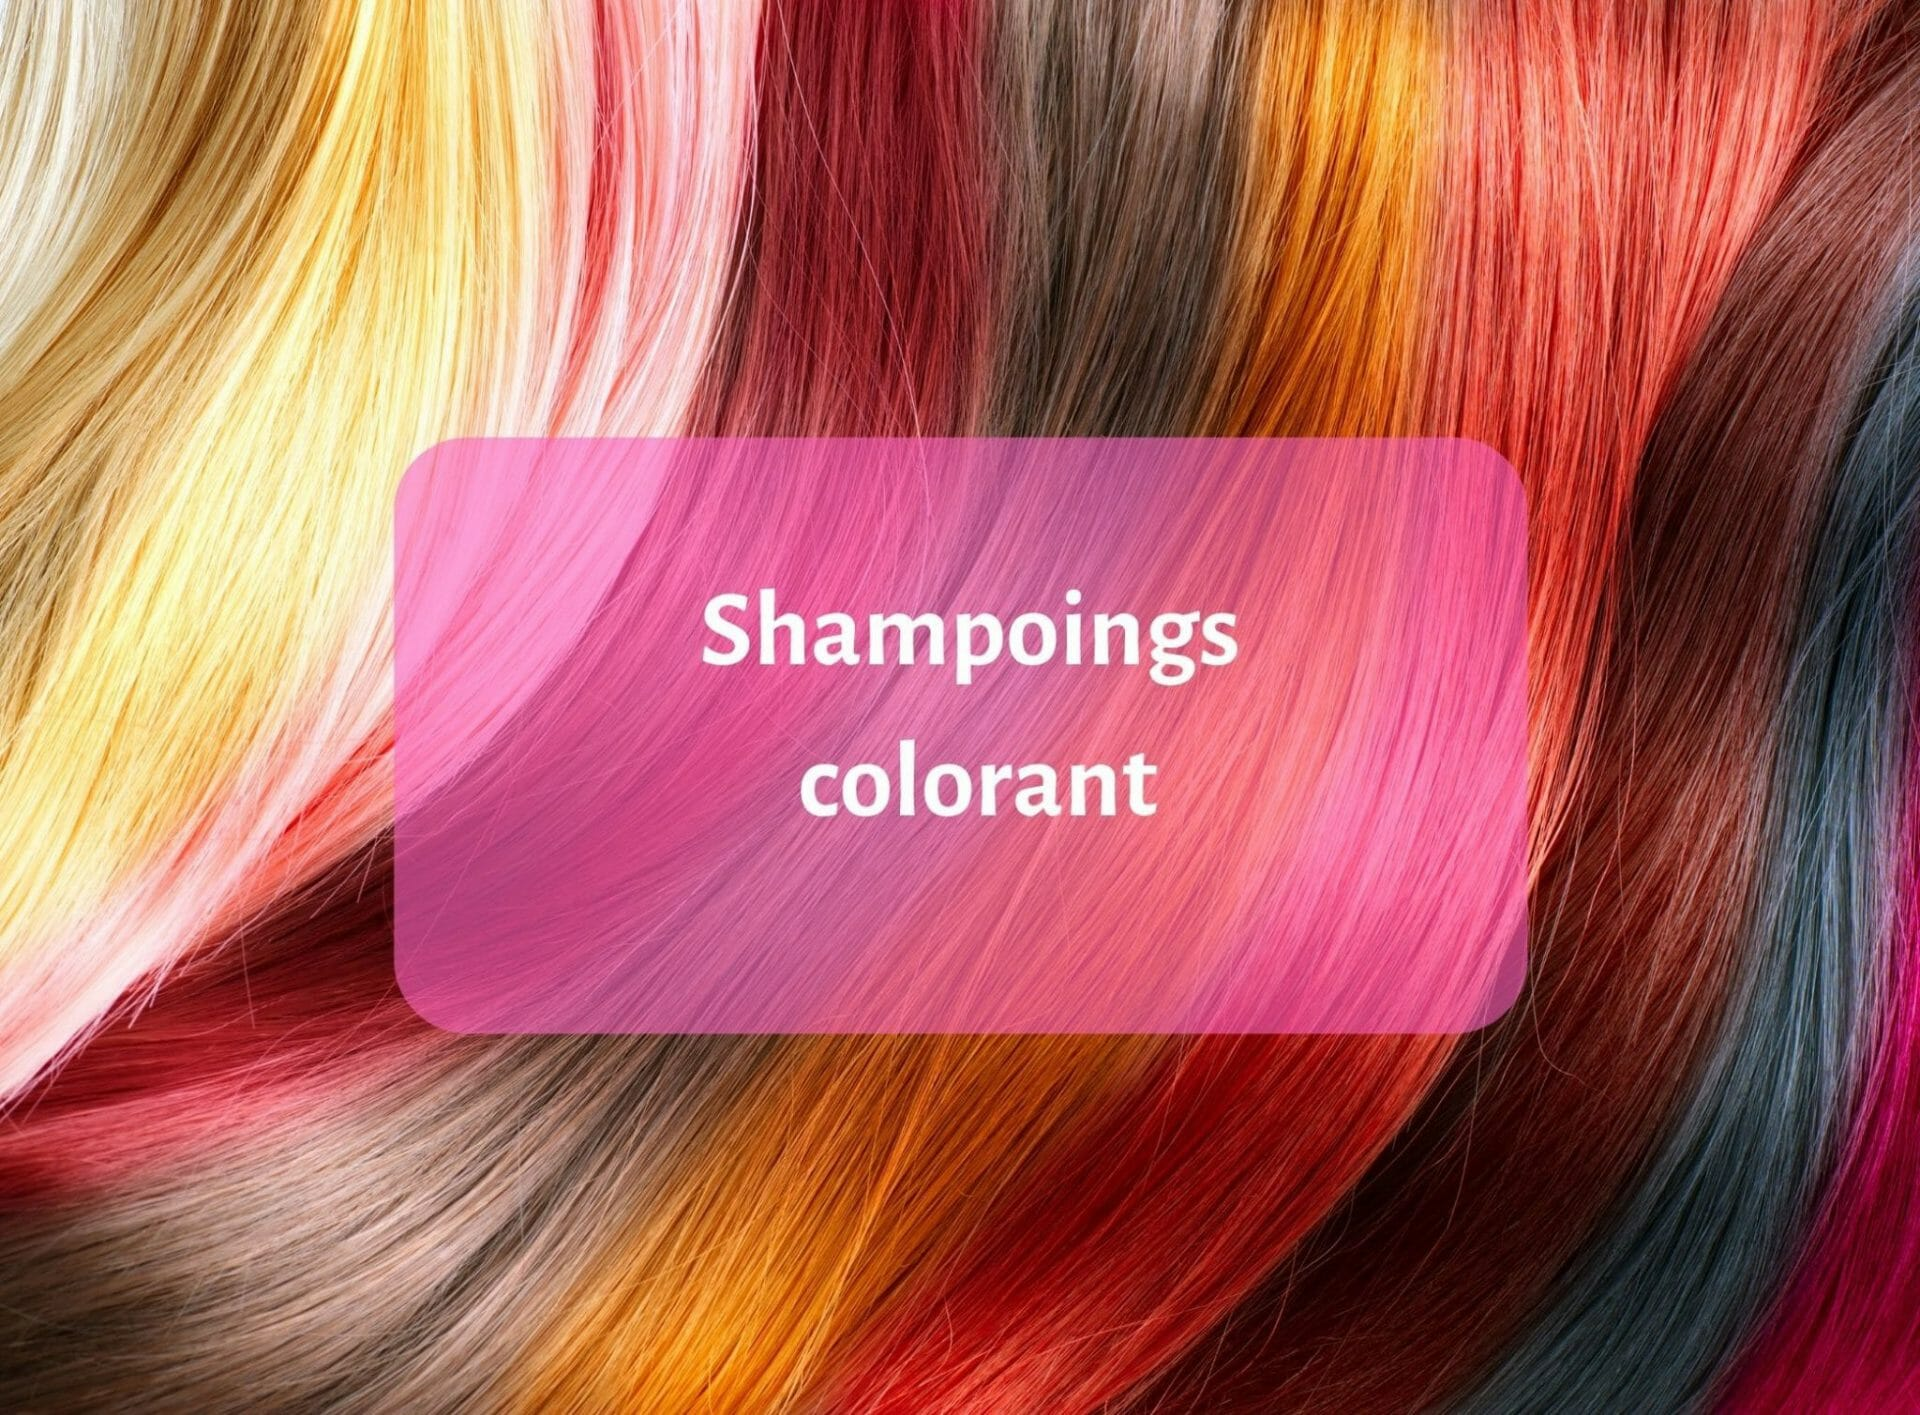 Shampoing colorant : lequel choisir ? 1